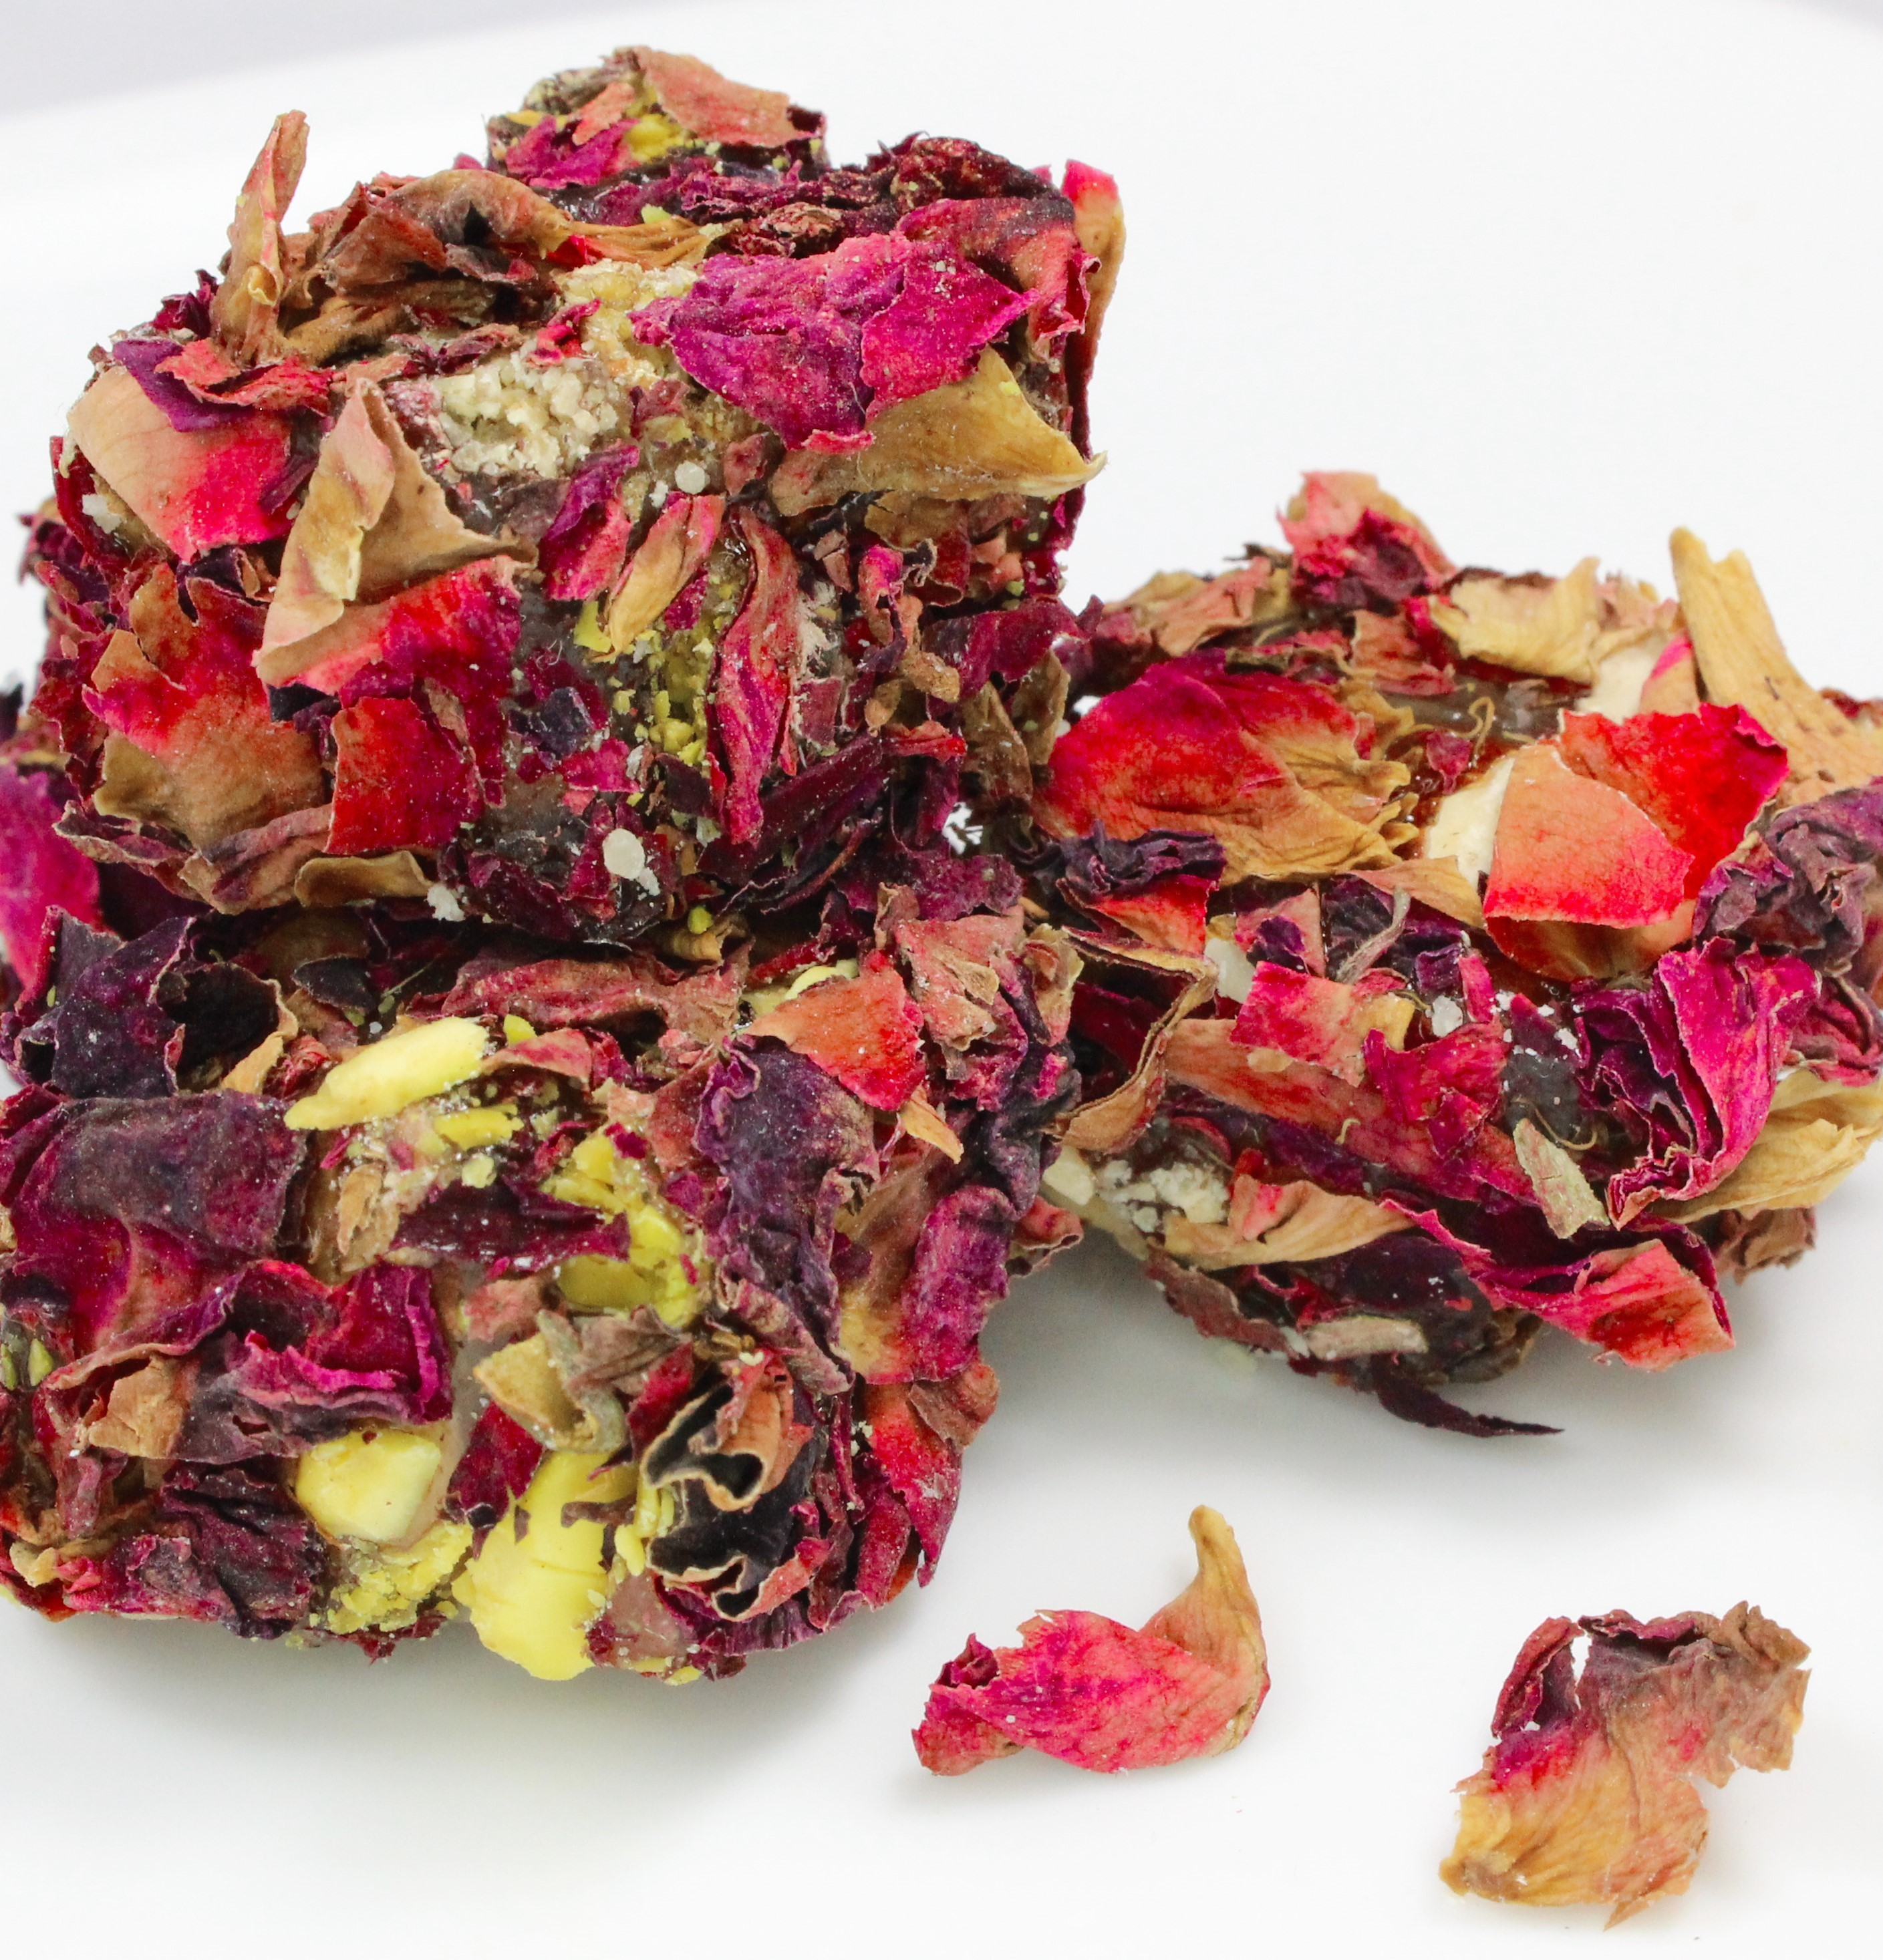 Turkish Delights with Mixed Nuts and Real Rose Petals